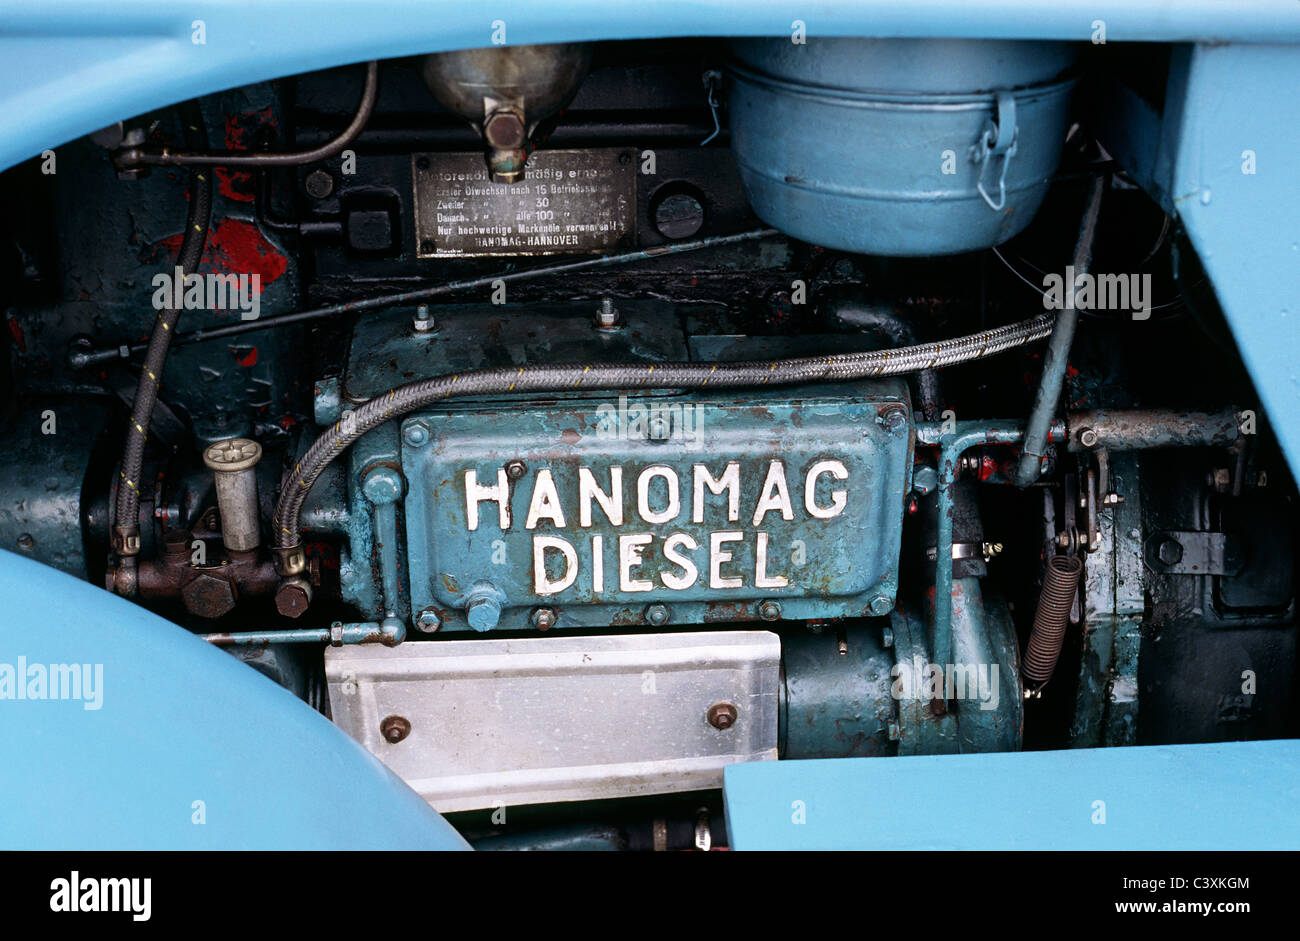 engine of a vintage r45 hanomag diesel tractor in bremerhaven in stock photo royalty free image. Black Bedroom Furniture Sets. Home Design Ideas